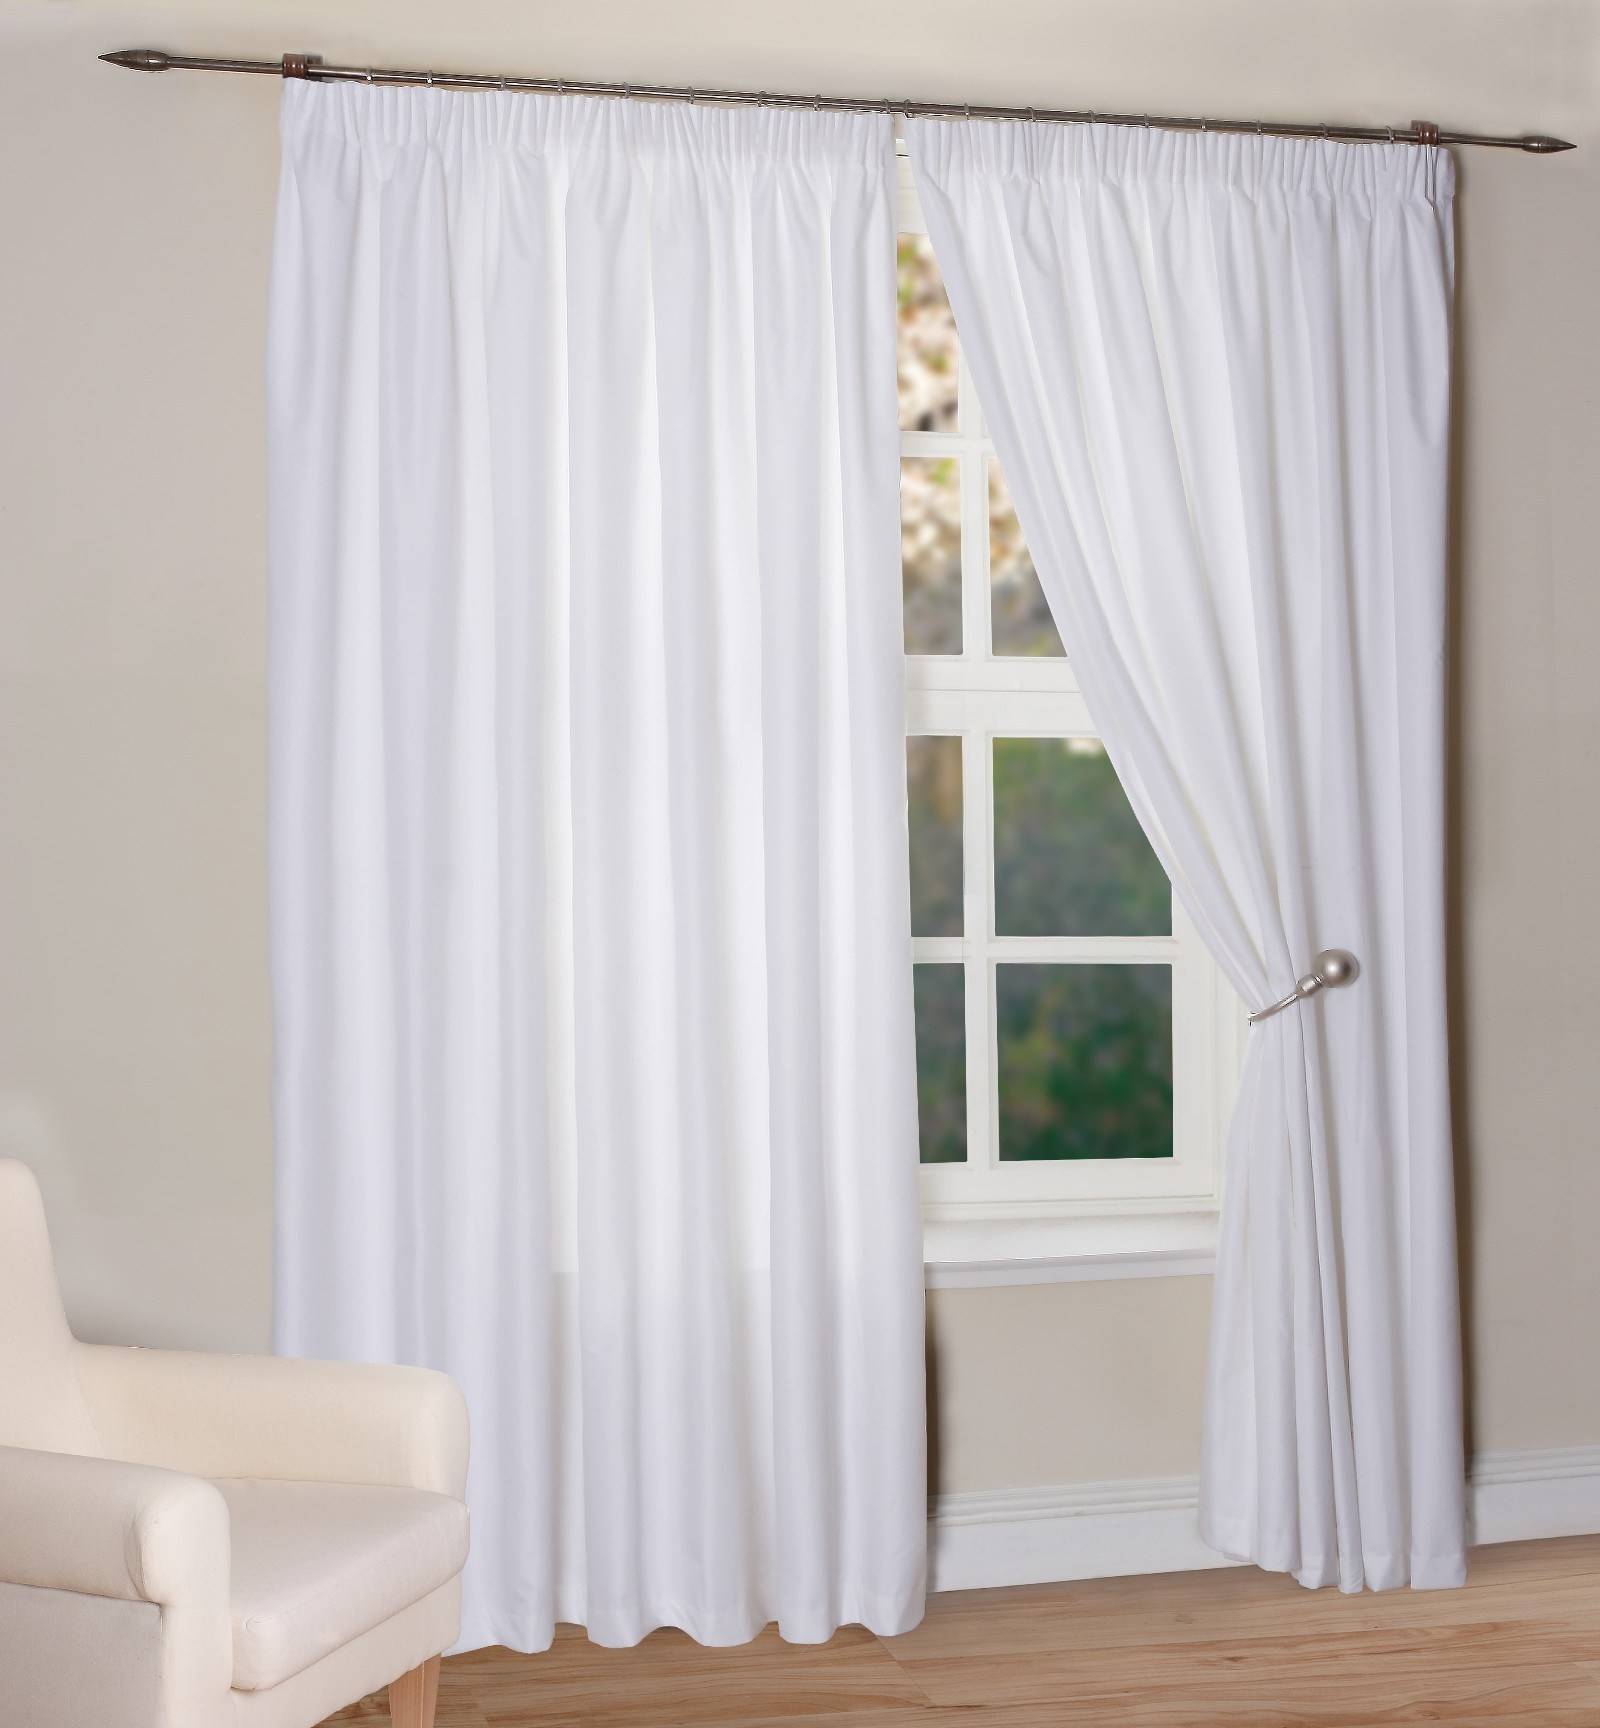 15 Best Ideas White Opaque Curtains Curtain Ideas